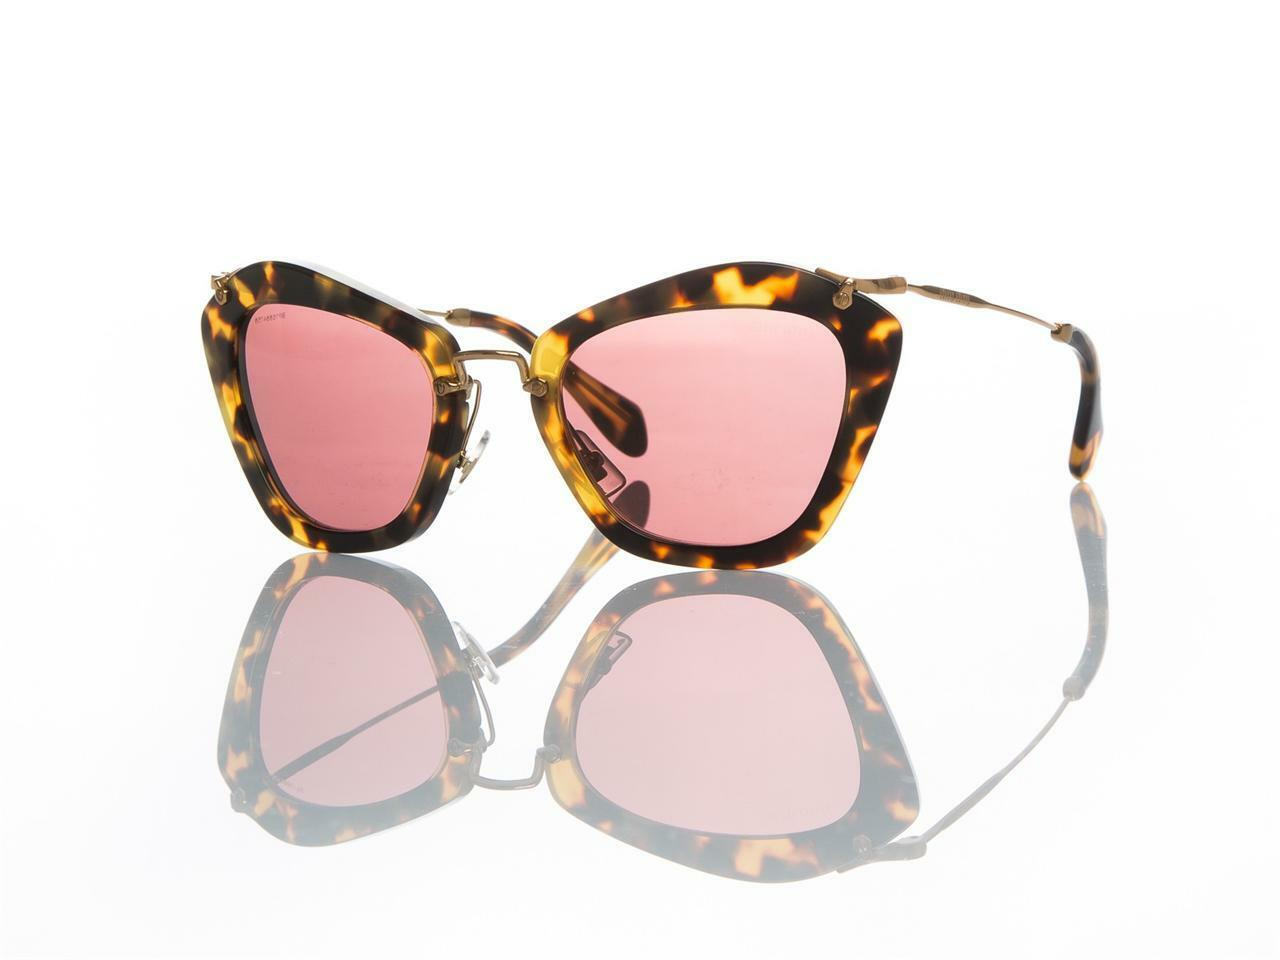 b16c417d9afe MIU MIU Women s Mu 10ns Noir Cateye Sunglasses 7s00a0 Yellow AVANA ...